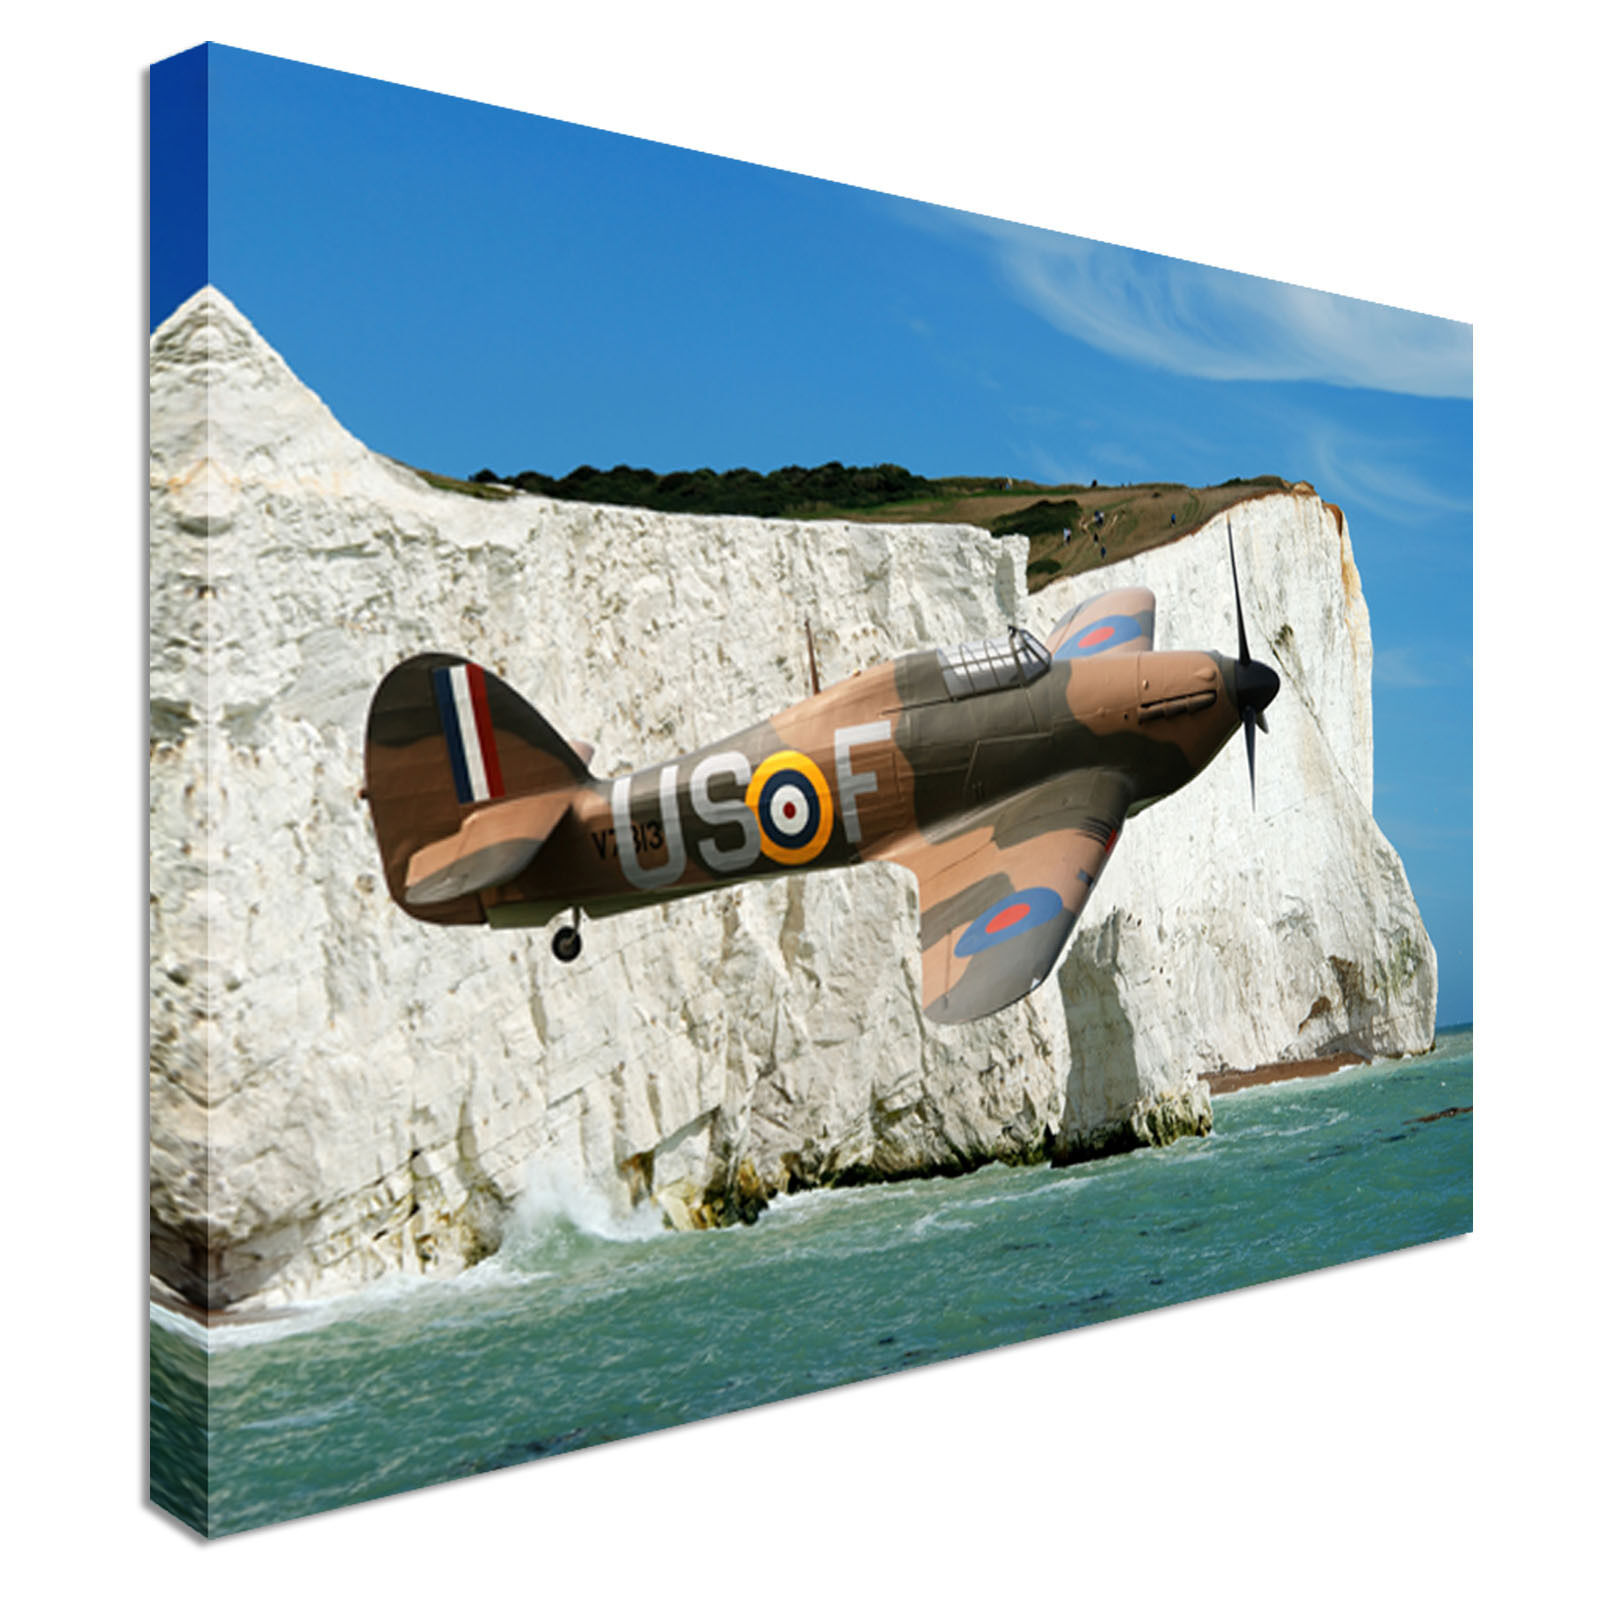 Hawker Hurricane Cliffs Of Dover Canvas Wall Art prints high quality